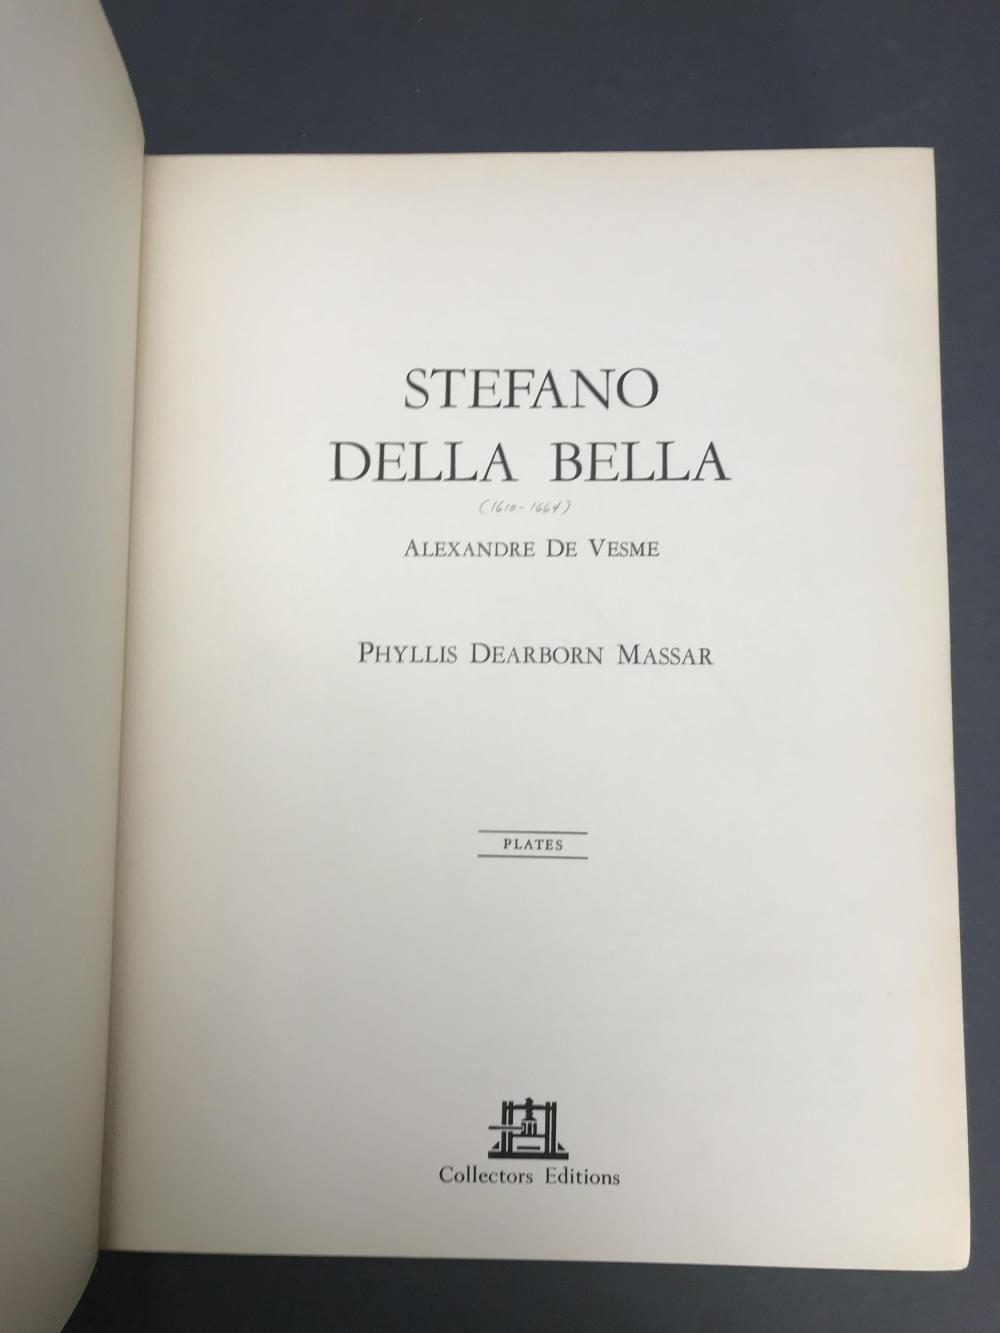 Lot 391: 2 Titles, 3 vols. Stefano Della Bella. C.Rs.